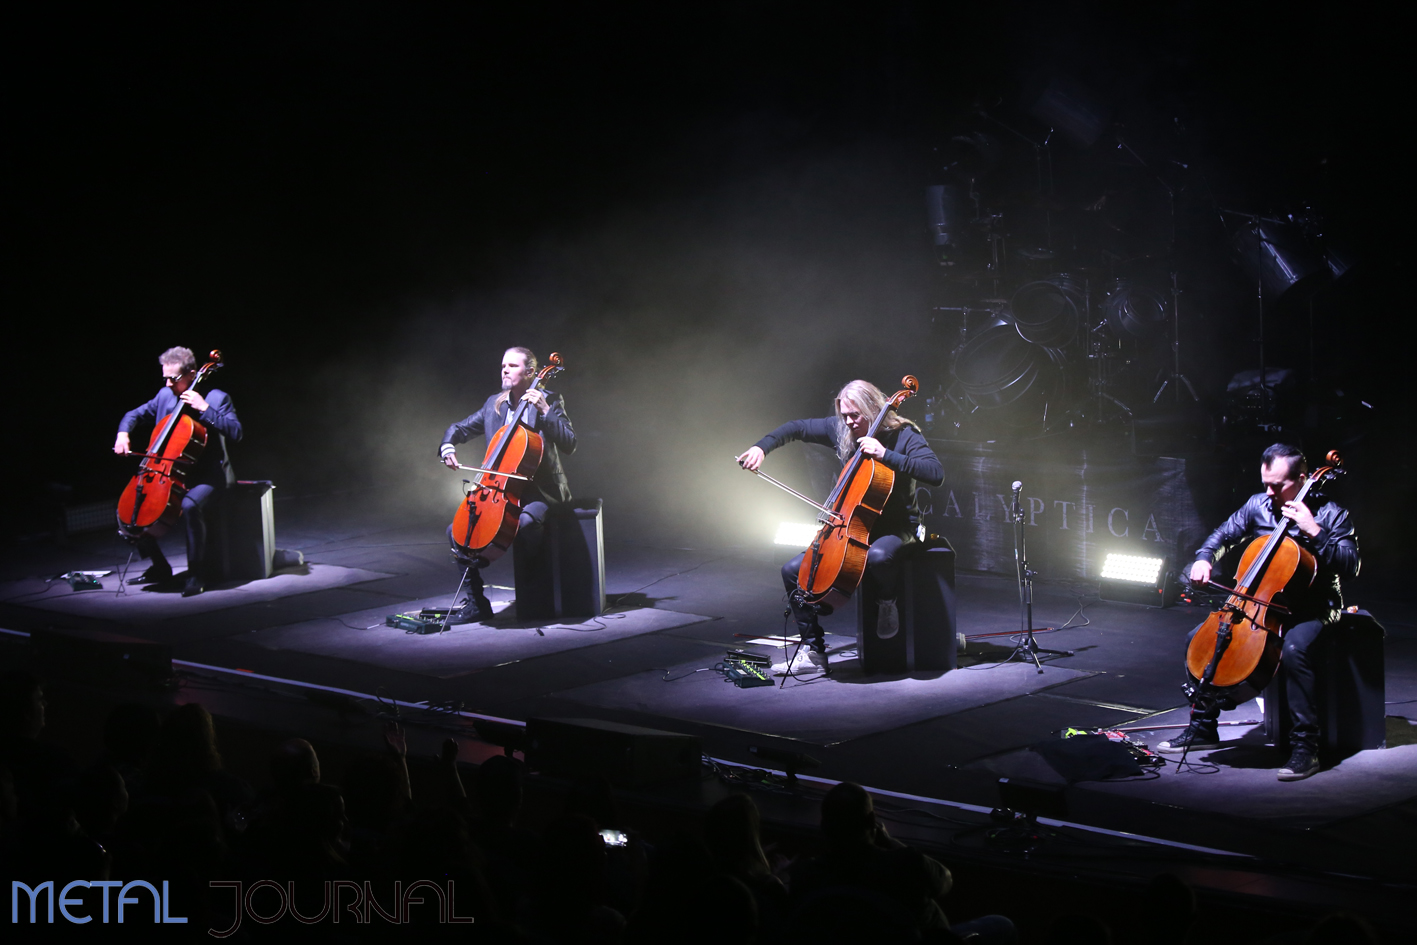 apocalyptica-metal journal pic 5